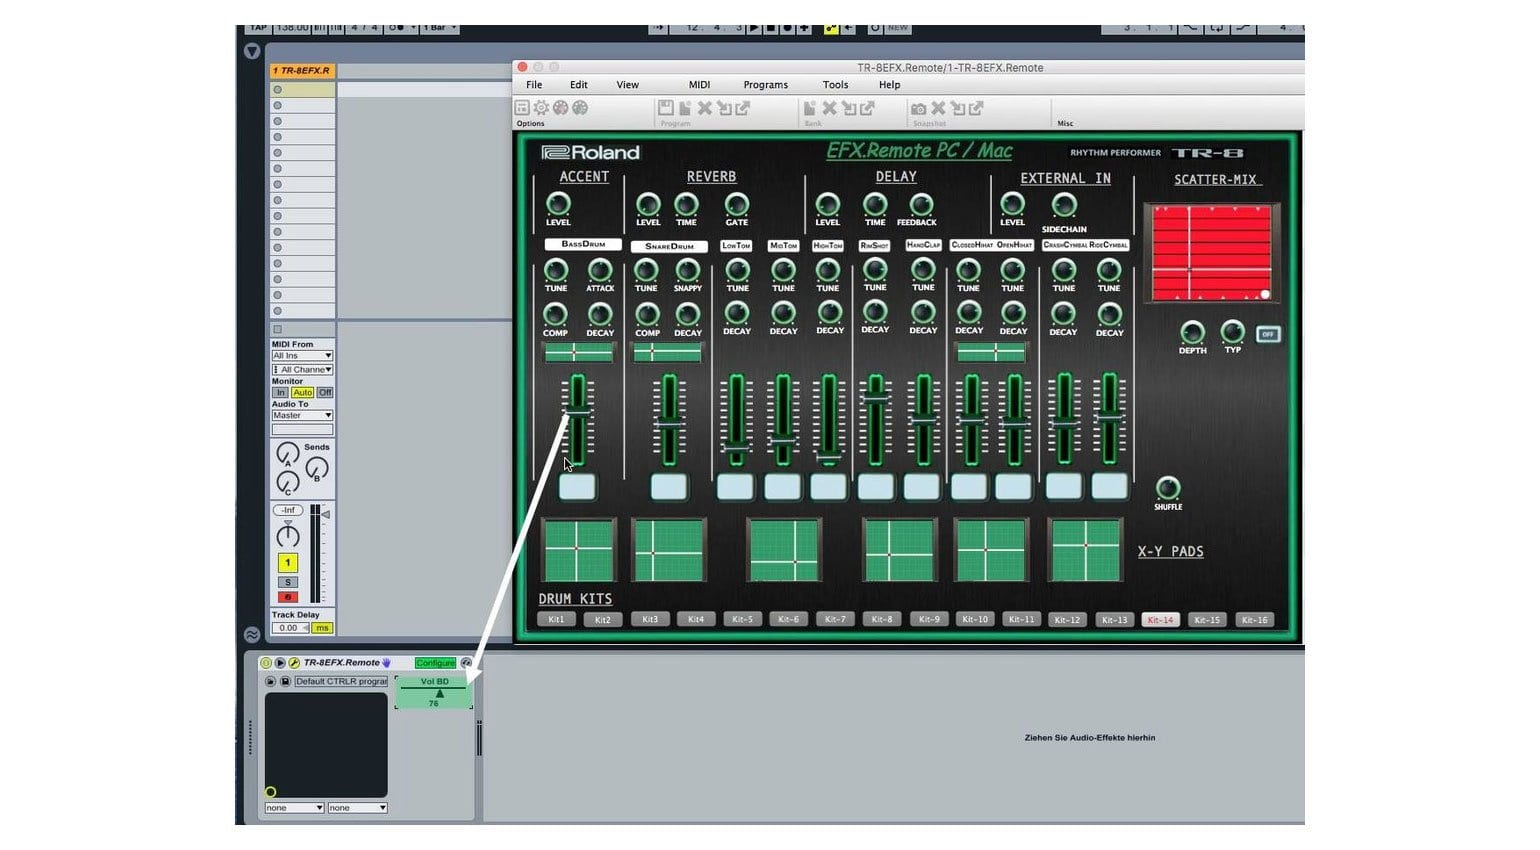 Roland AIRA TR-8 MIDI editor lets you control the hardware from your